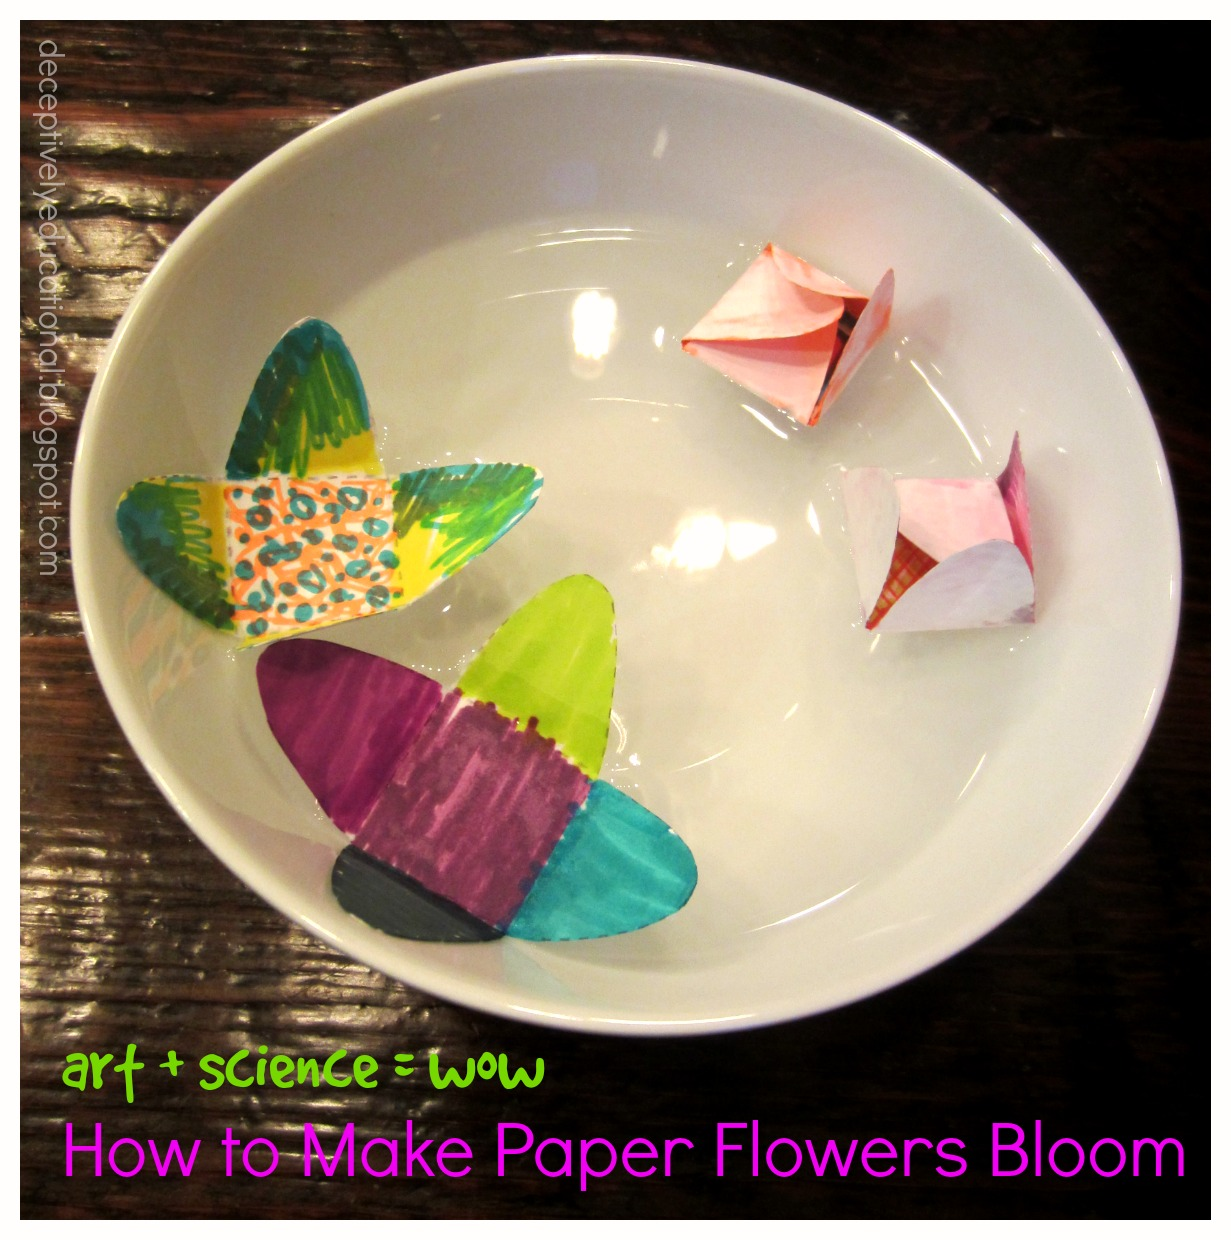 Relentlessly fun deceptively educational how to make paper flowers i created a template of paper flowers for us to use download it free from google drive here mightylinksfo